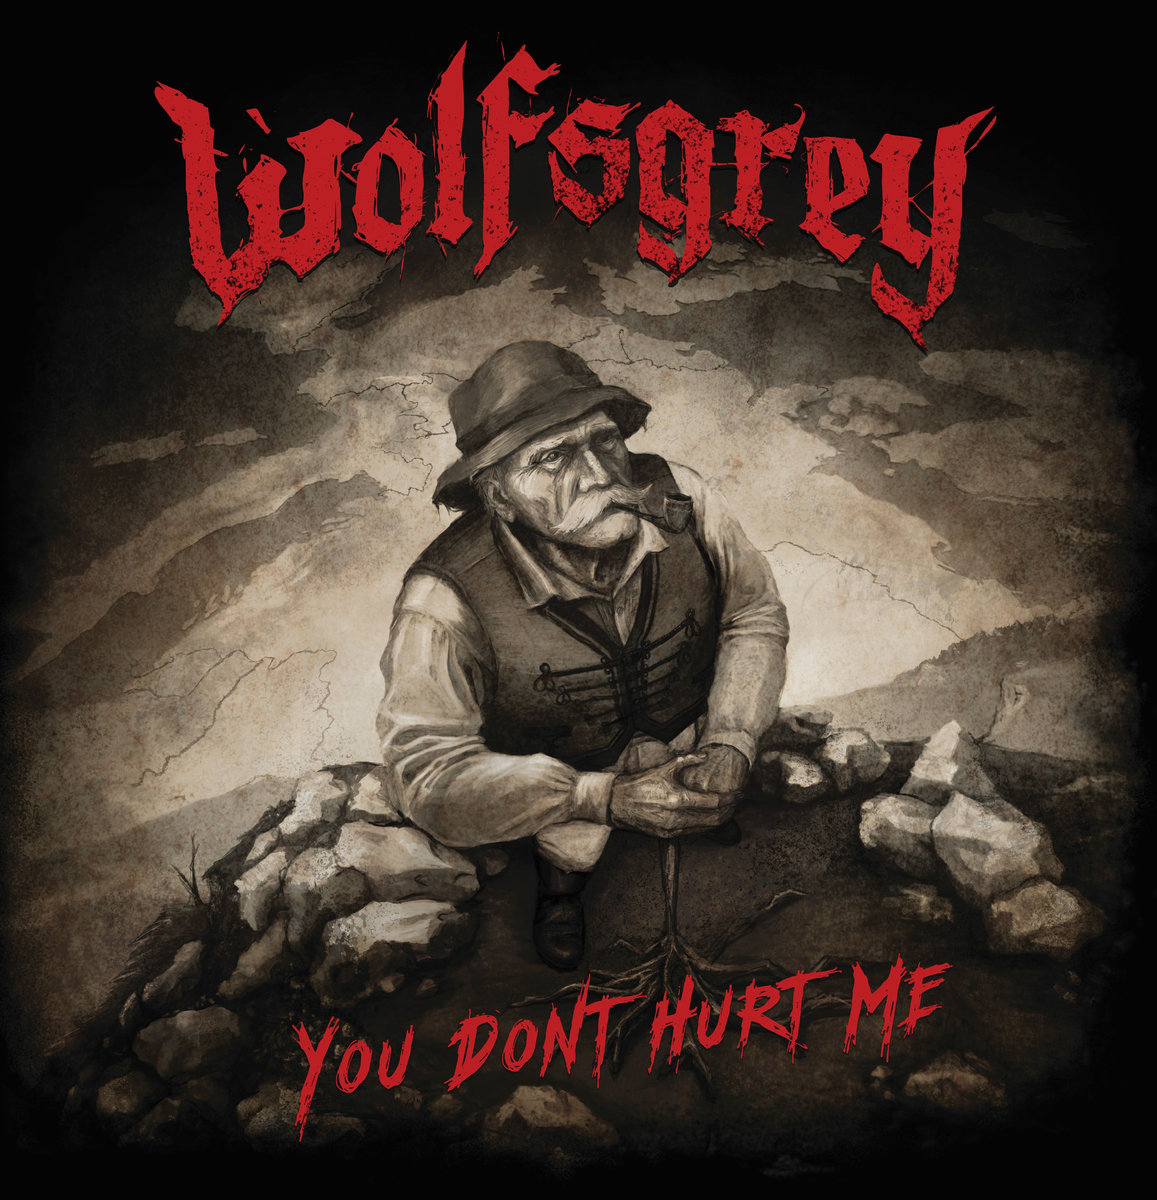 Wolfsgrey – You Don't Hurt Me